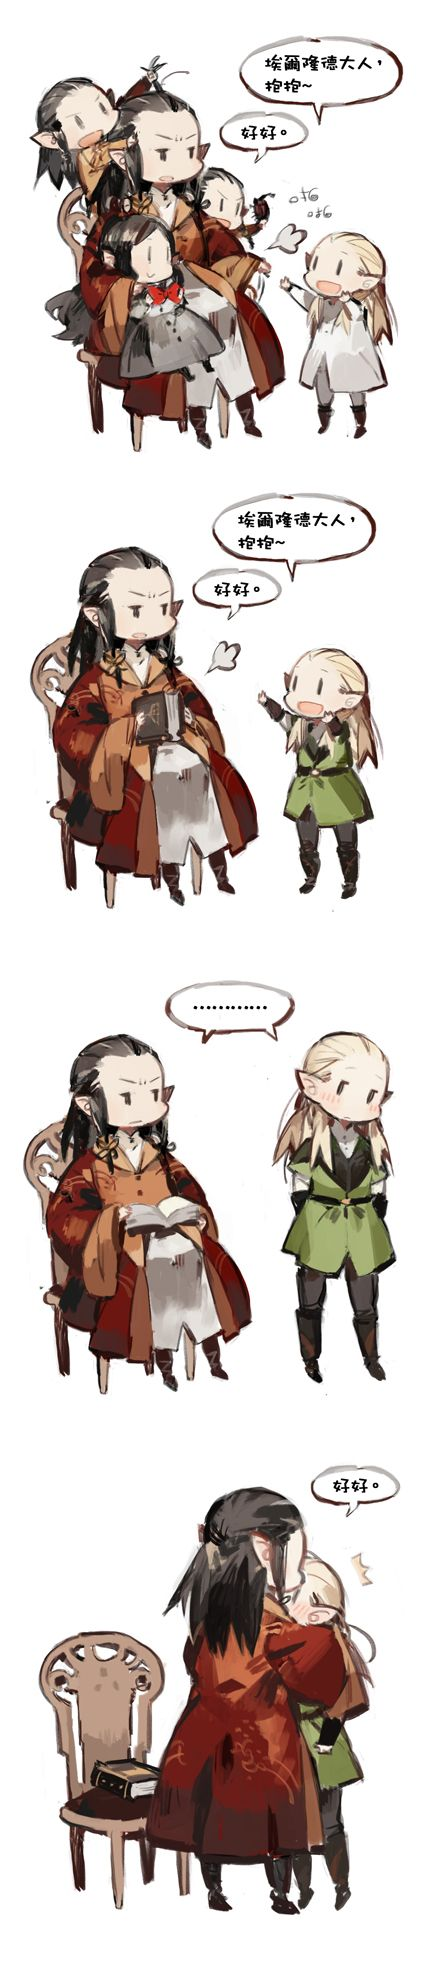 The Lord Of The Rings Page 27 Of 26 Zerochan Anime Image Board Mobile Lord Of The Rings Lotr Art Legolas